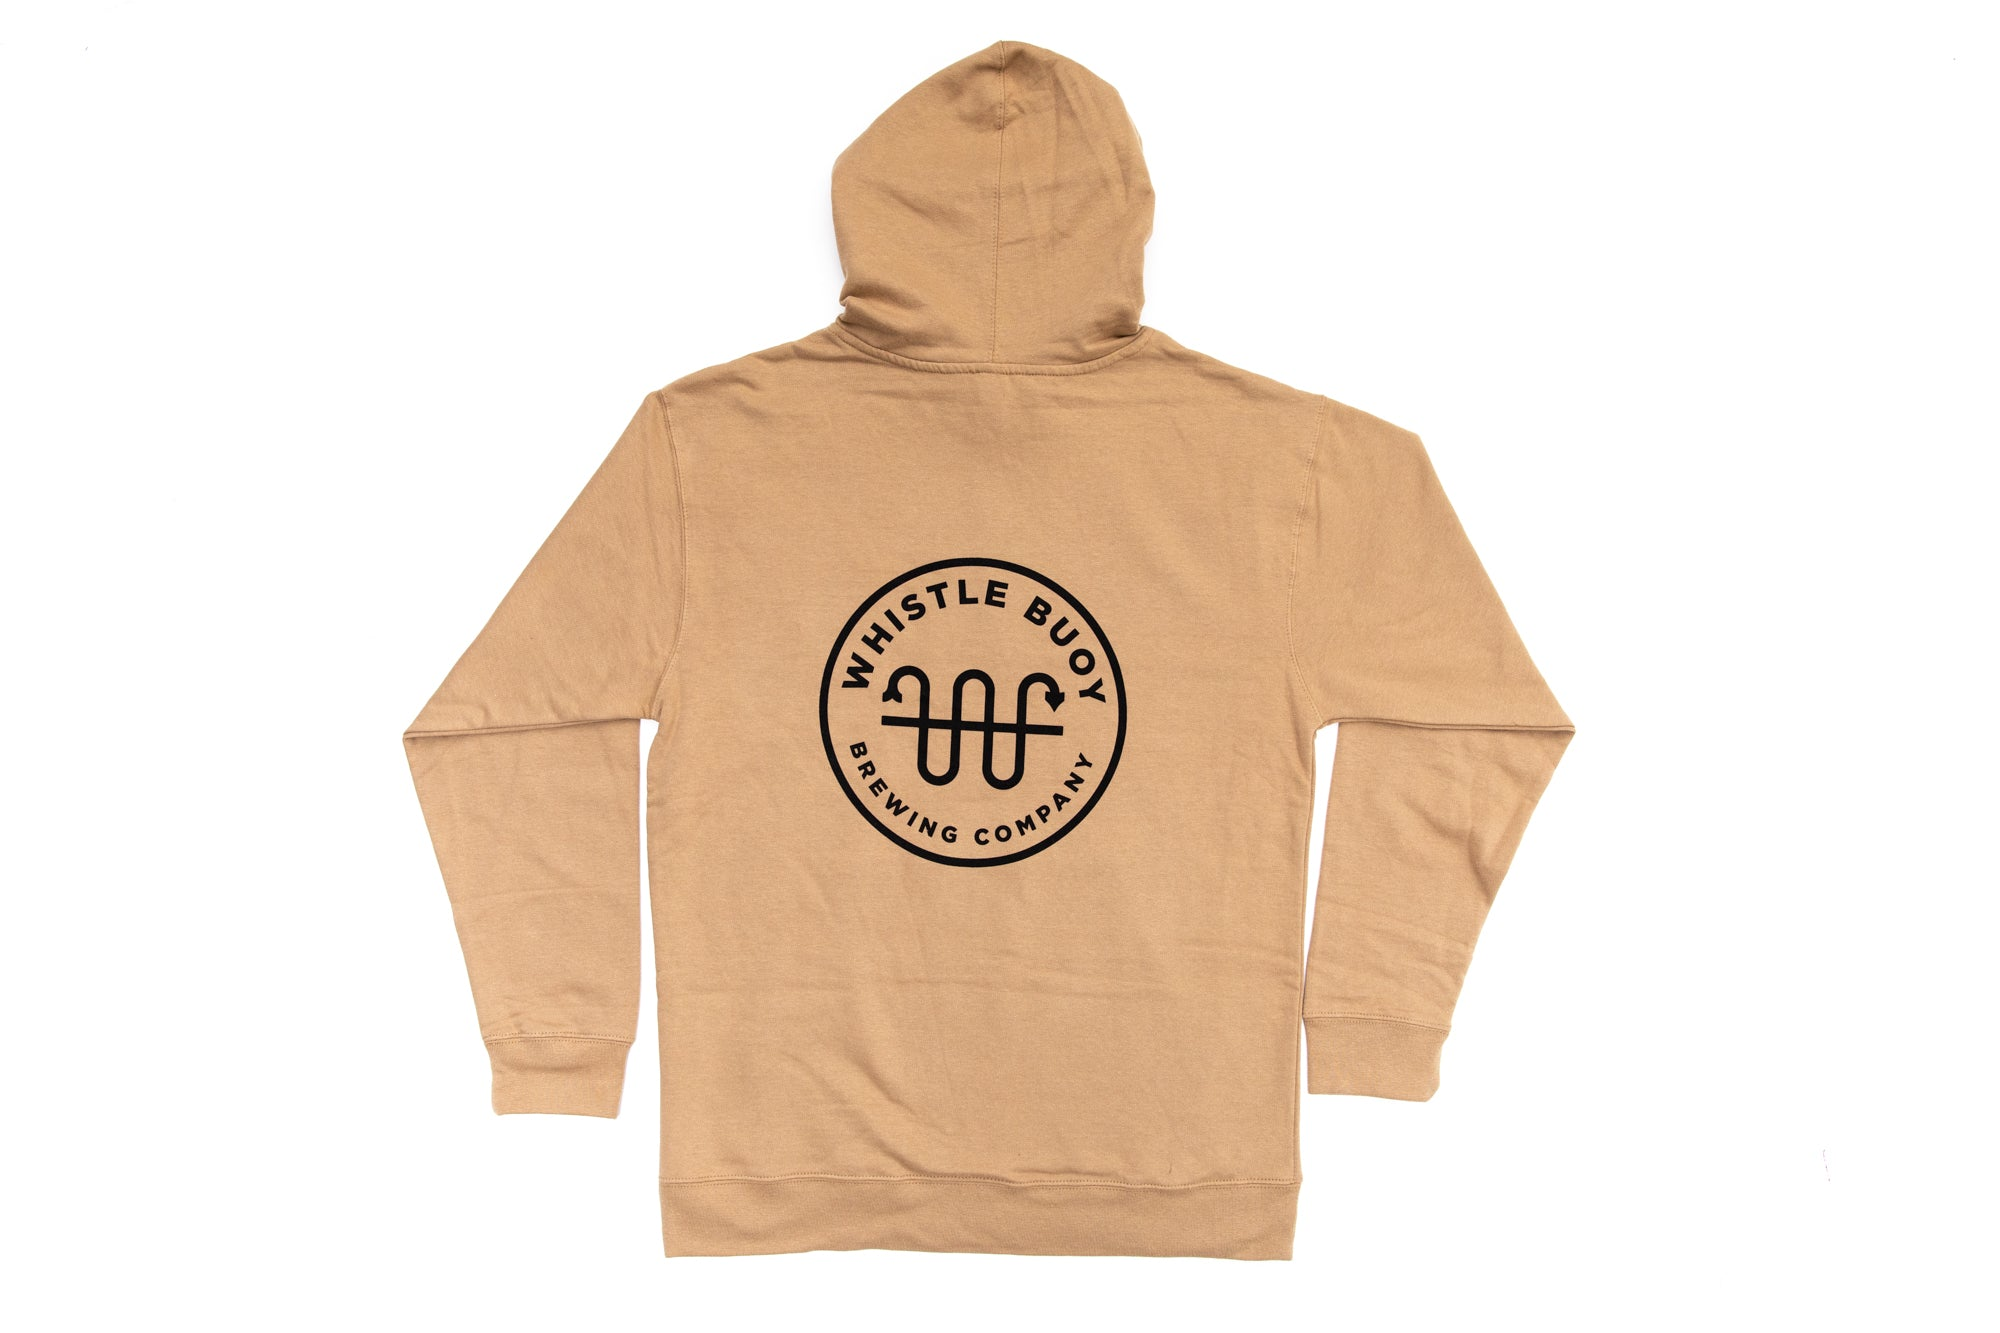 Back of Whistle Buoy Emblem Hoody - Sand colour studio shot